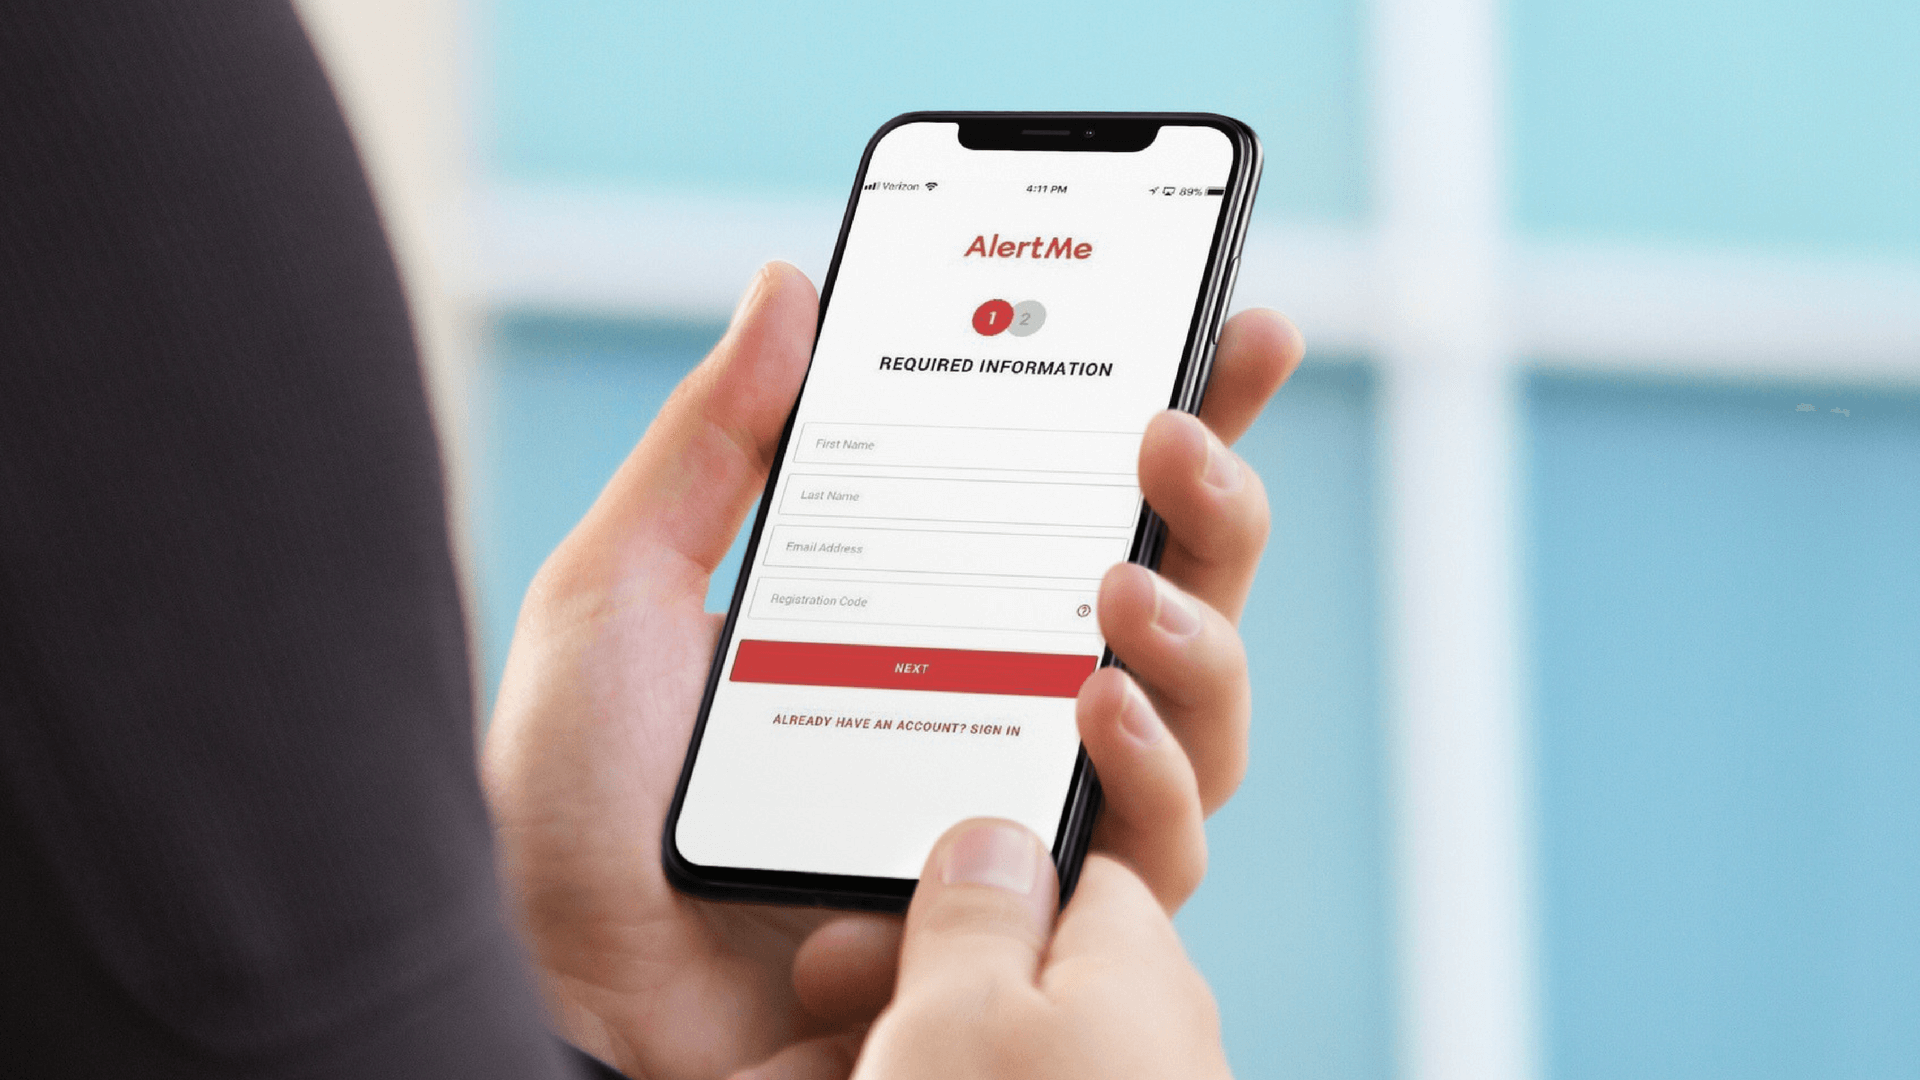 02221-Blog-CivicReady Enhances Alert Capabilities with AlertMe App and Geofencing (1)